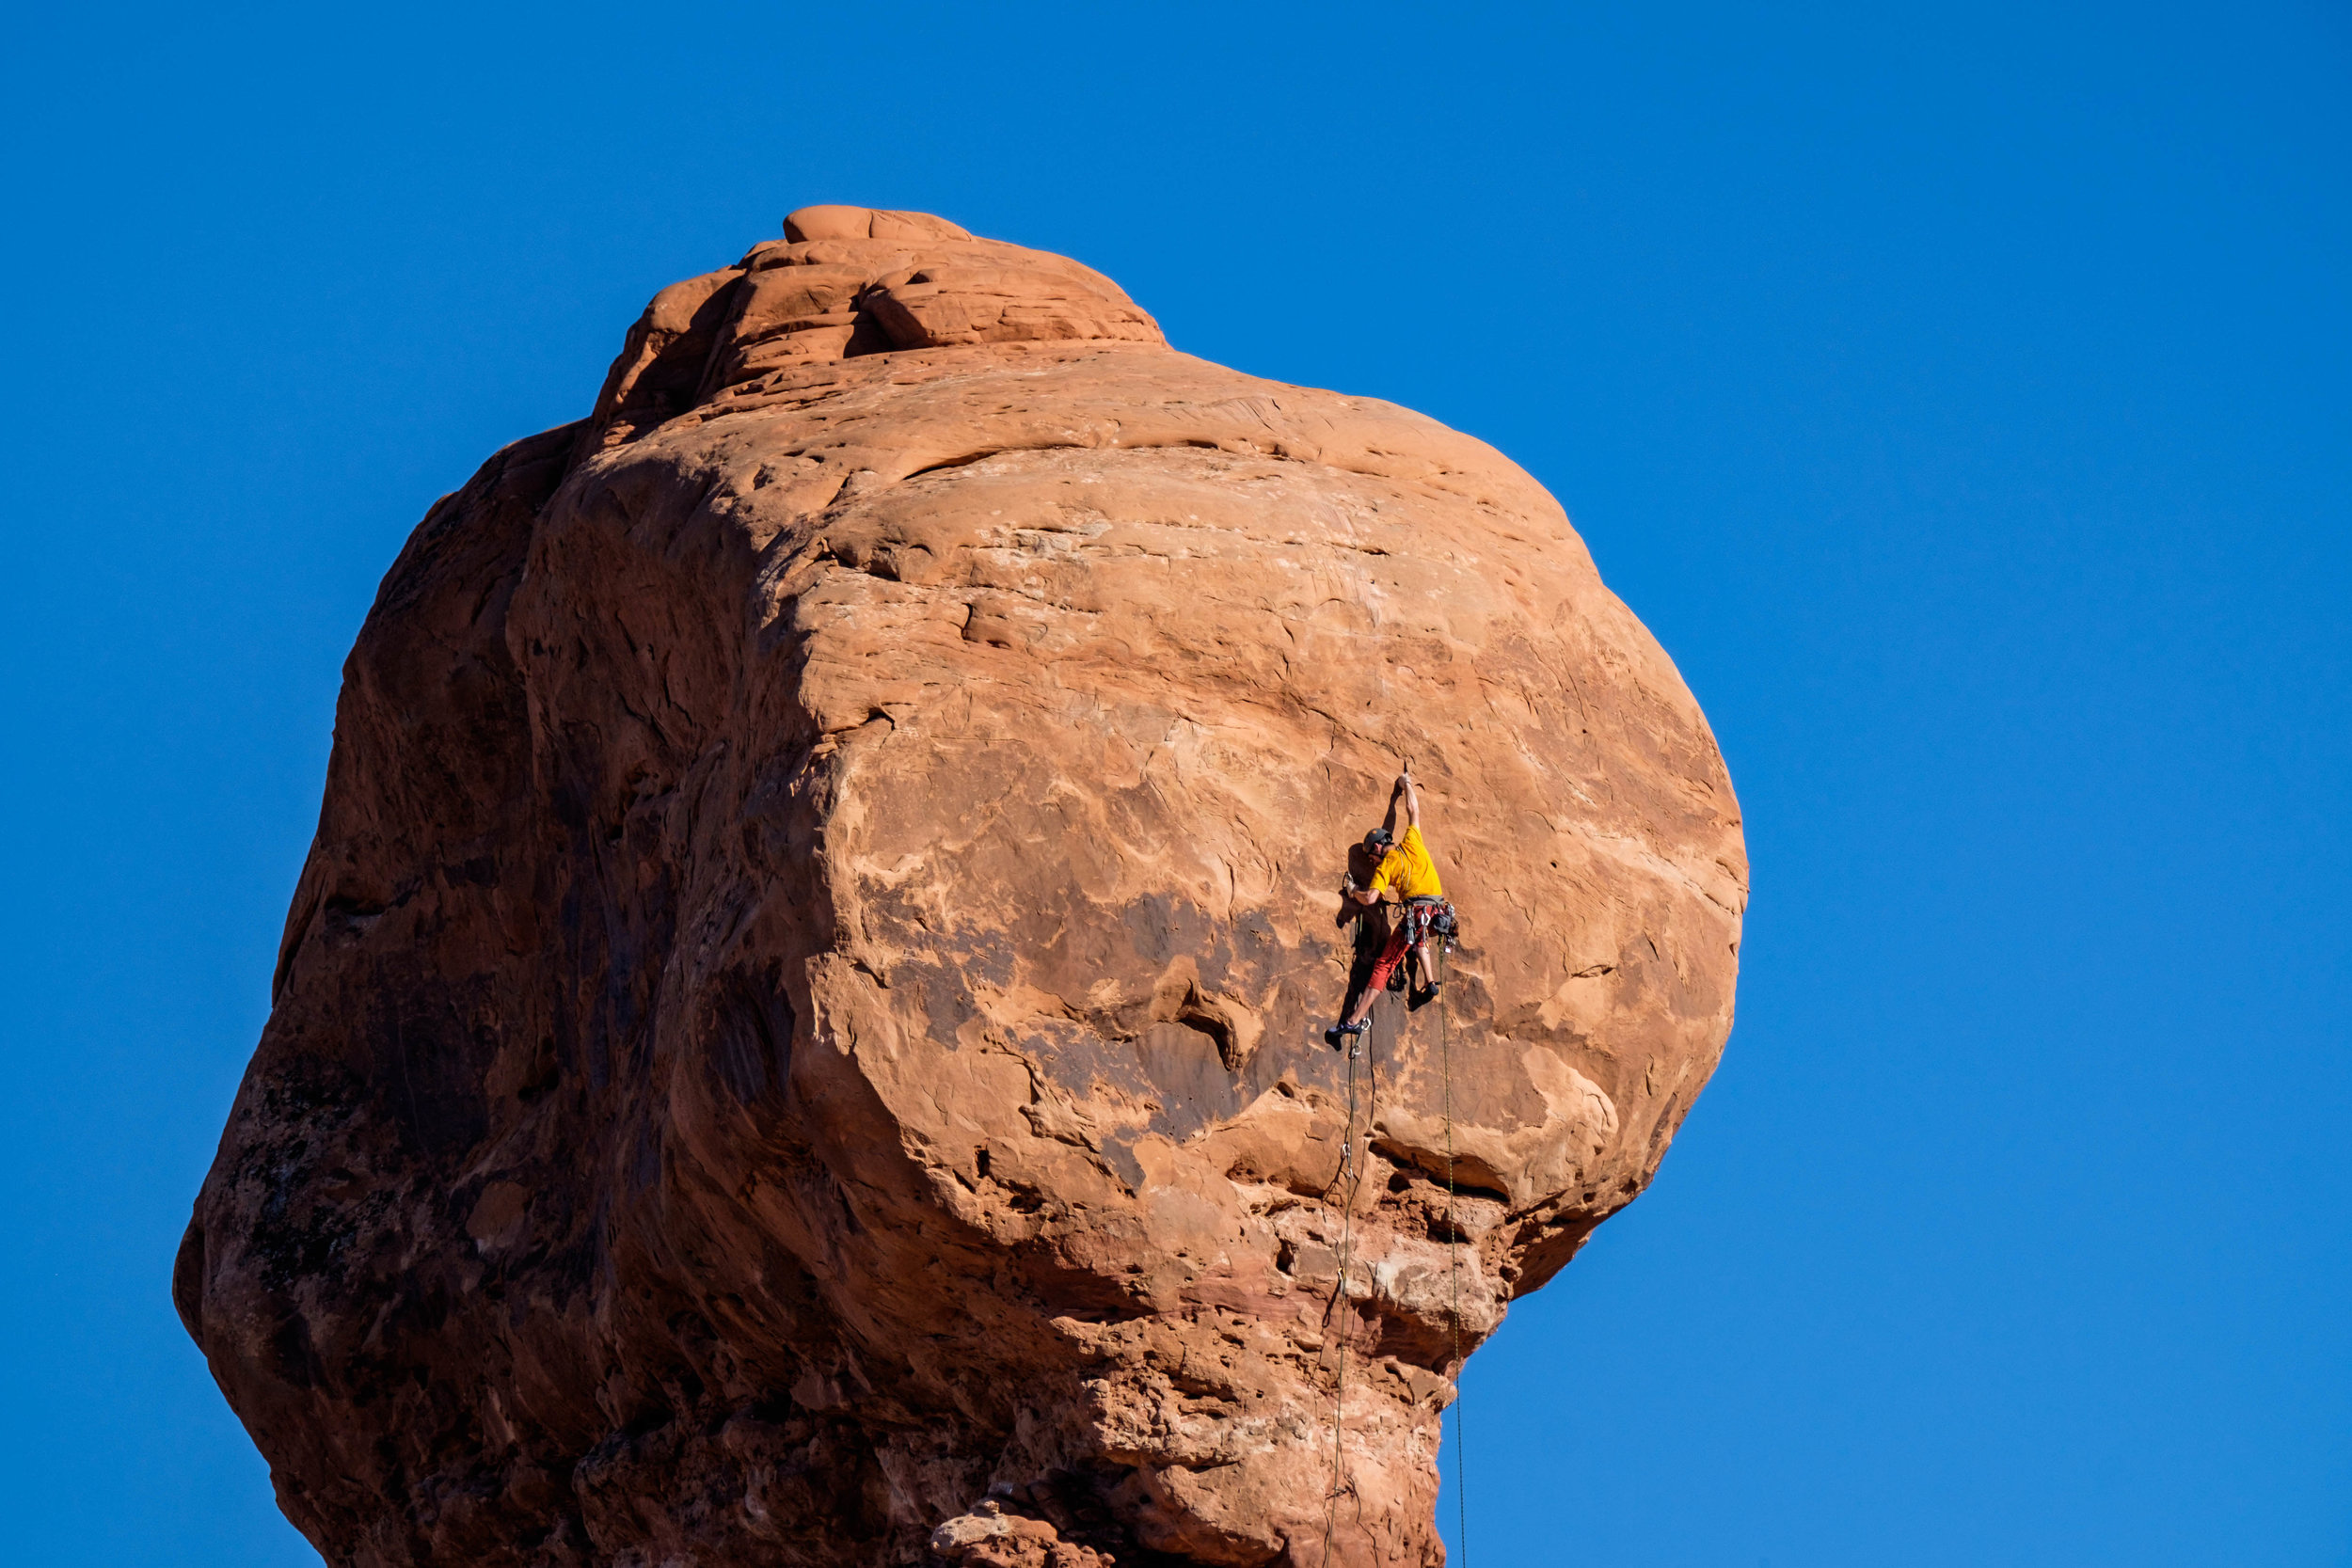 Rock climbers come from all over the world to climb the Entrada sandstone in this park.